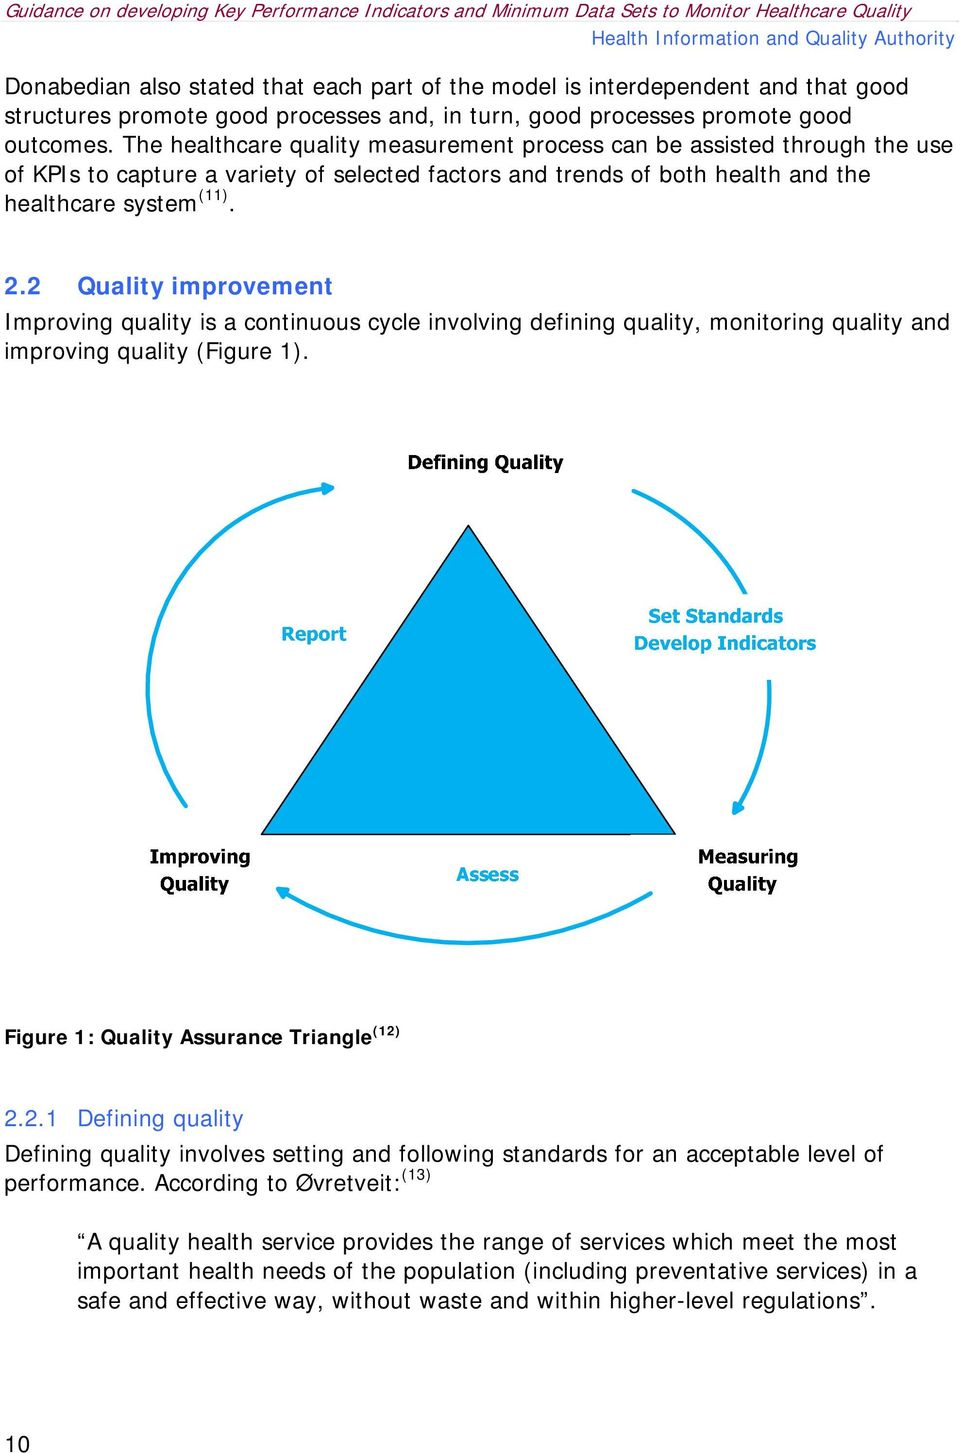 2 Quality improvement Improving quality is a continuous cycle involving defining quality, monitoring quality and improving quality (Figure 1). Figure 1: Quality Assurance Triangle (12) 2.2.1 Defining quality Defining quality involves setting and following standards for an acceptable level of performance.